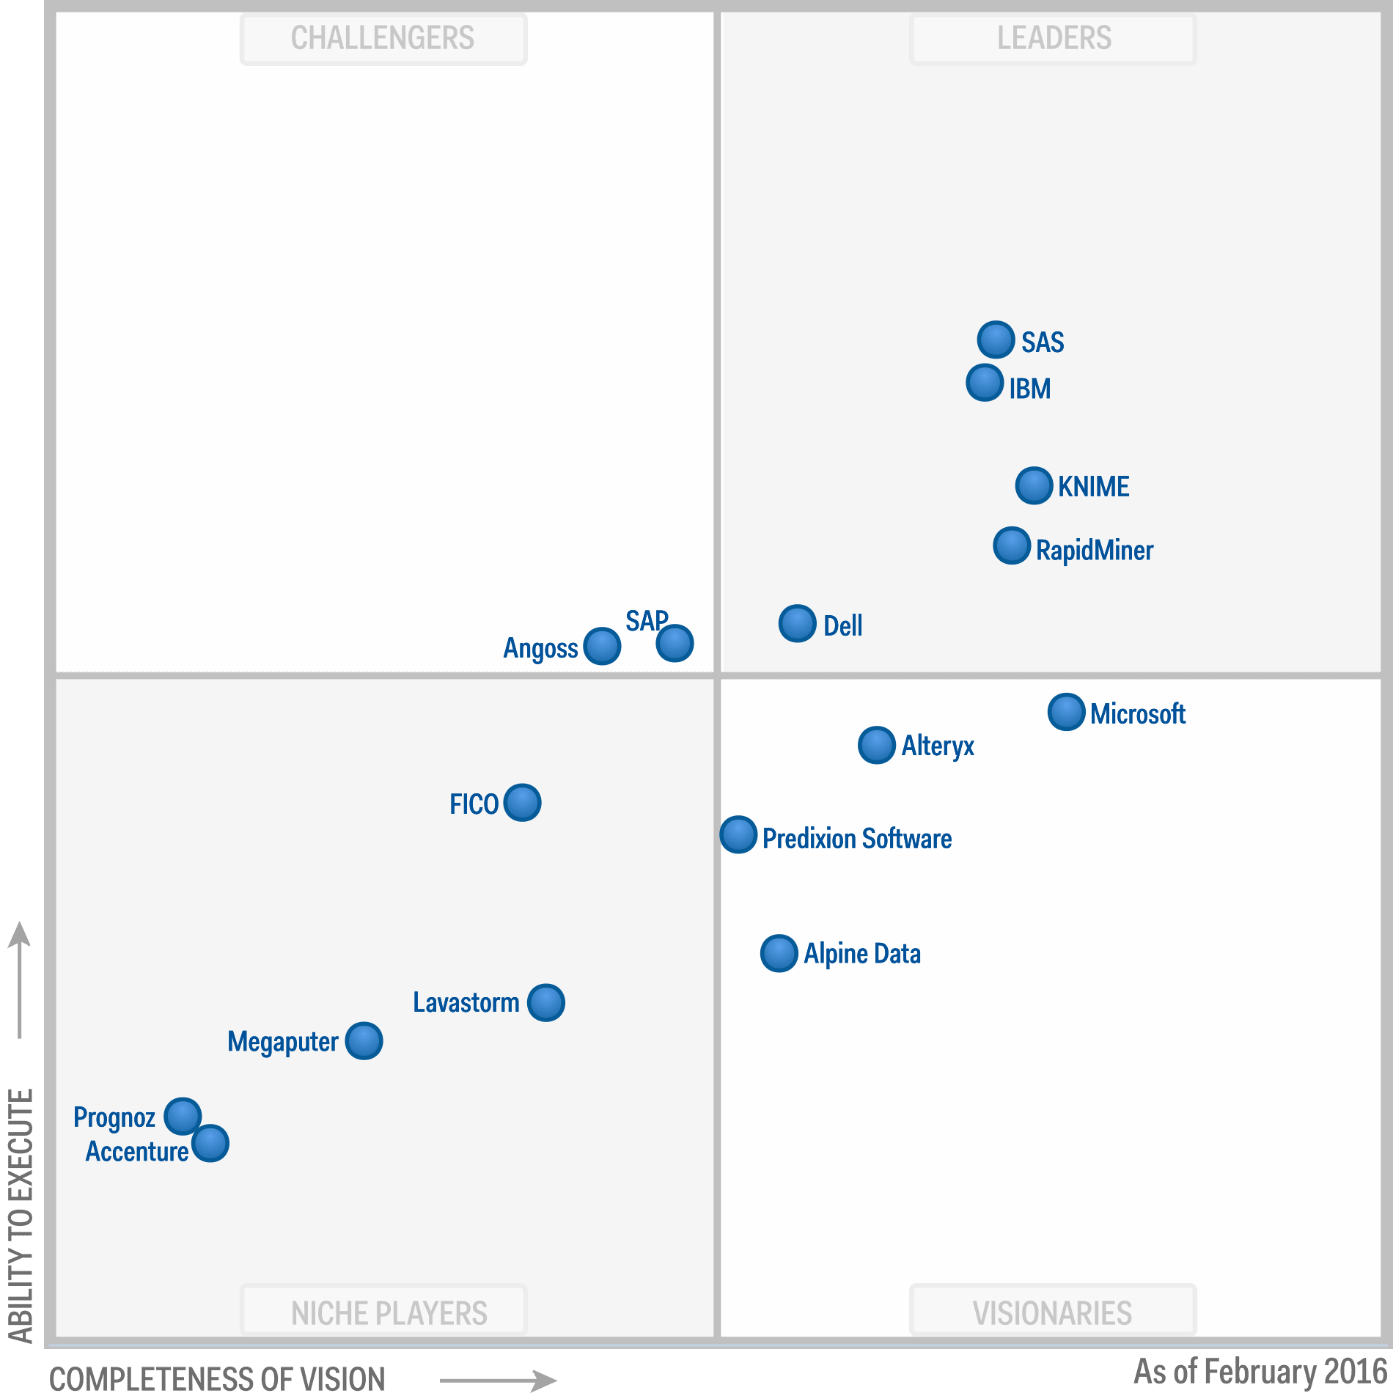 Magic Quadrant Advanced Analytics 2016